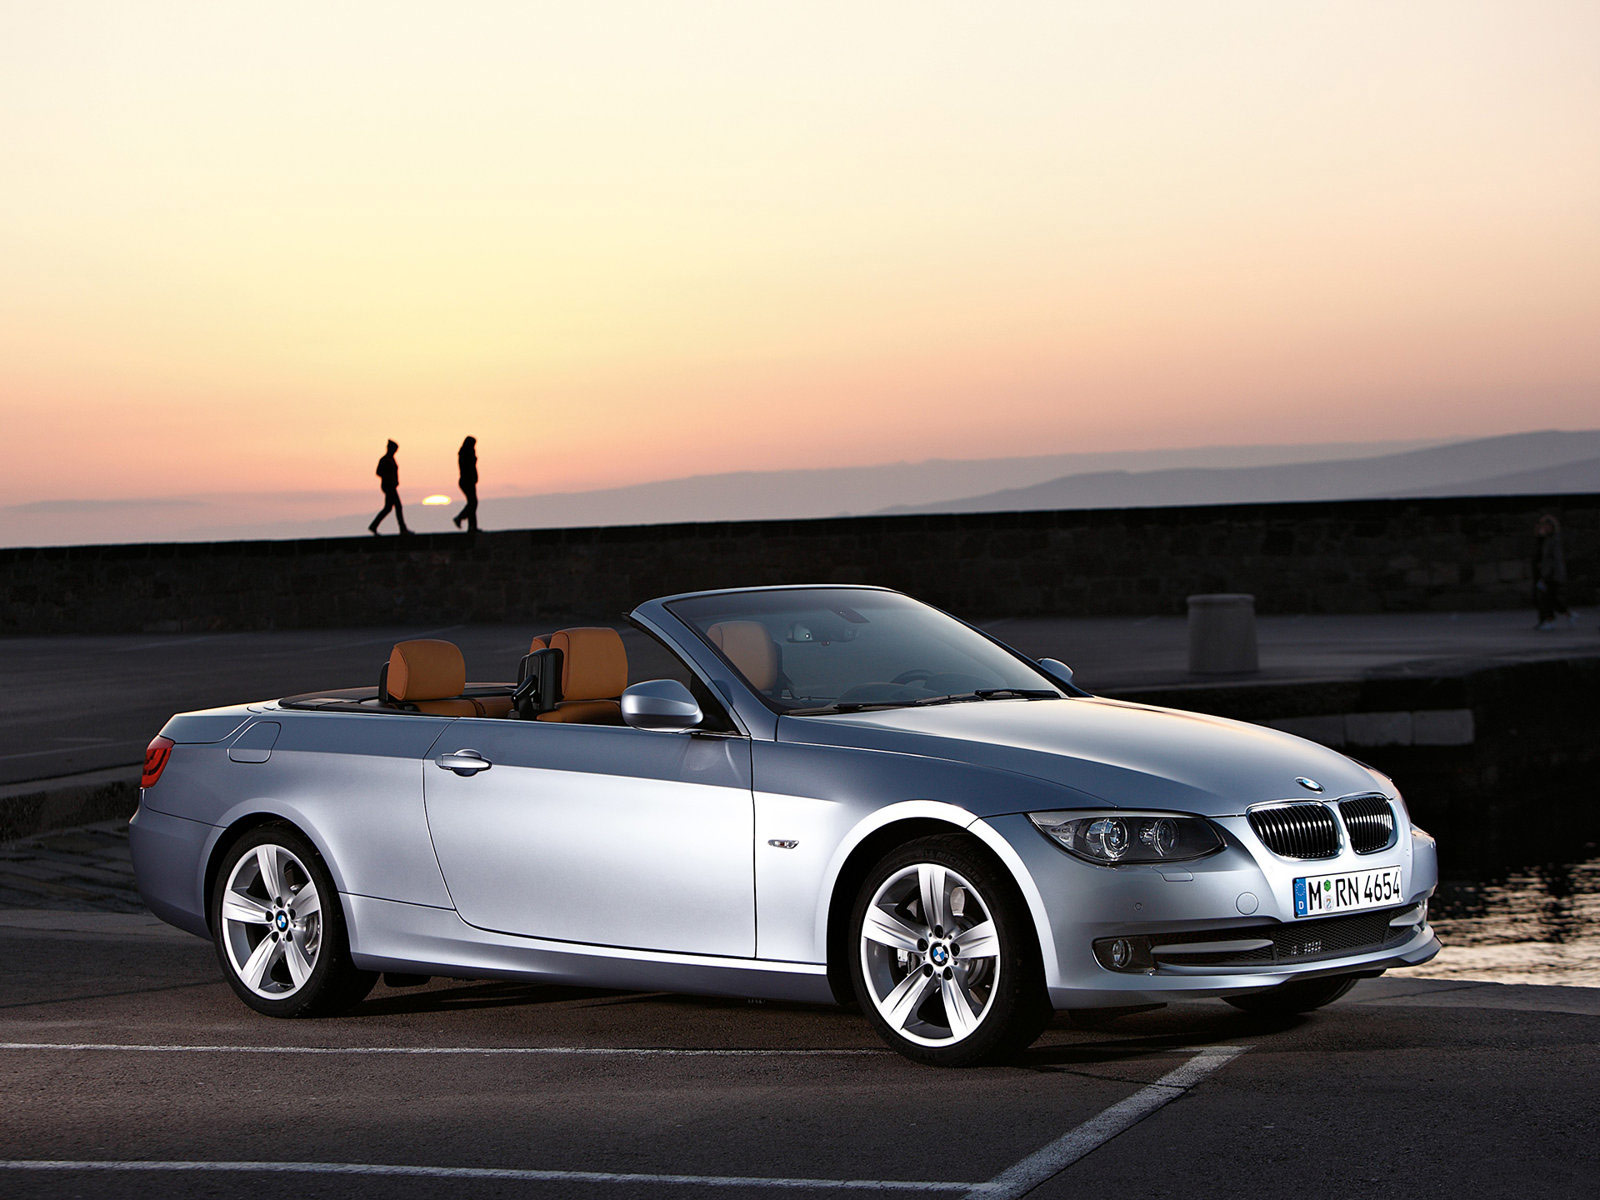 2011 bmw 3 series convertible car accident lawyers. Black Bedroom Furniture Sets. Home Design Ideas